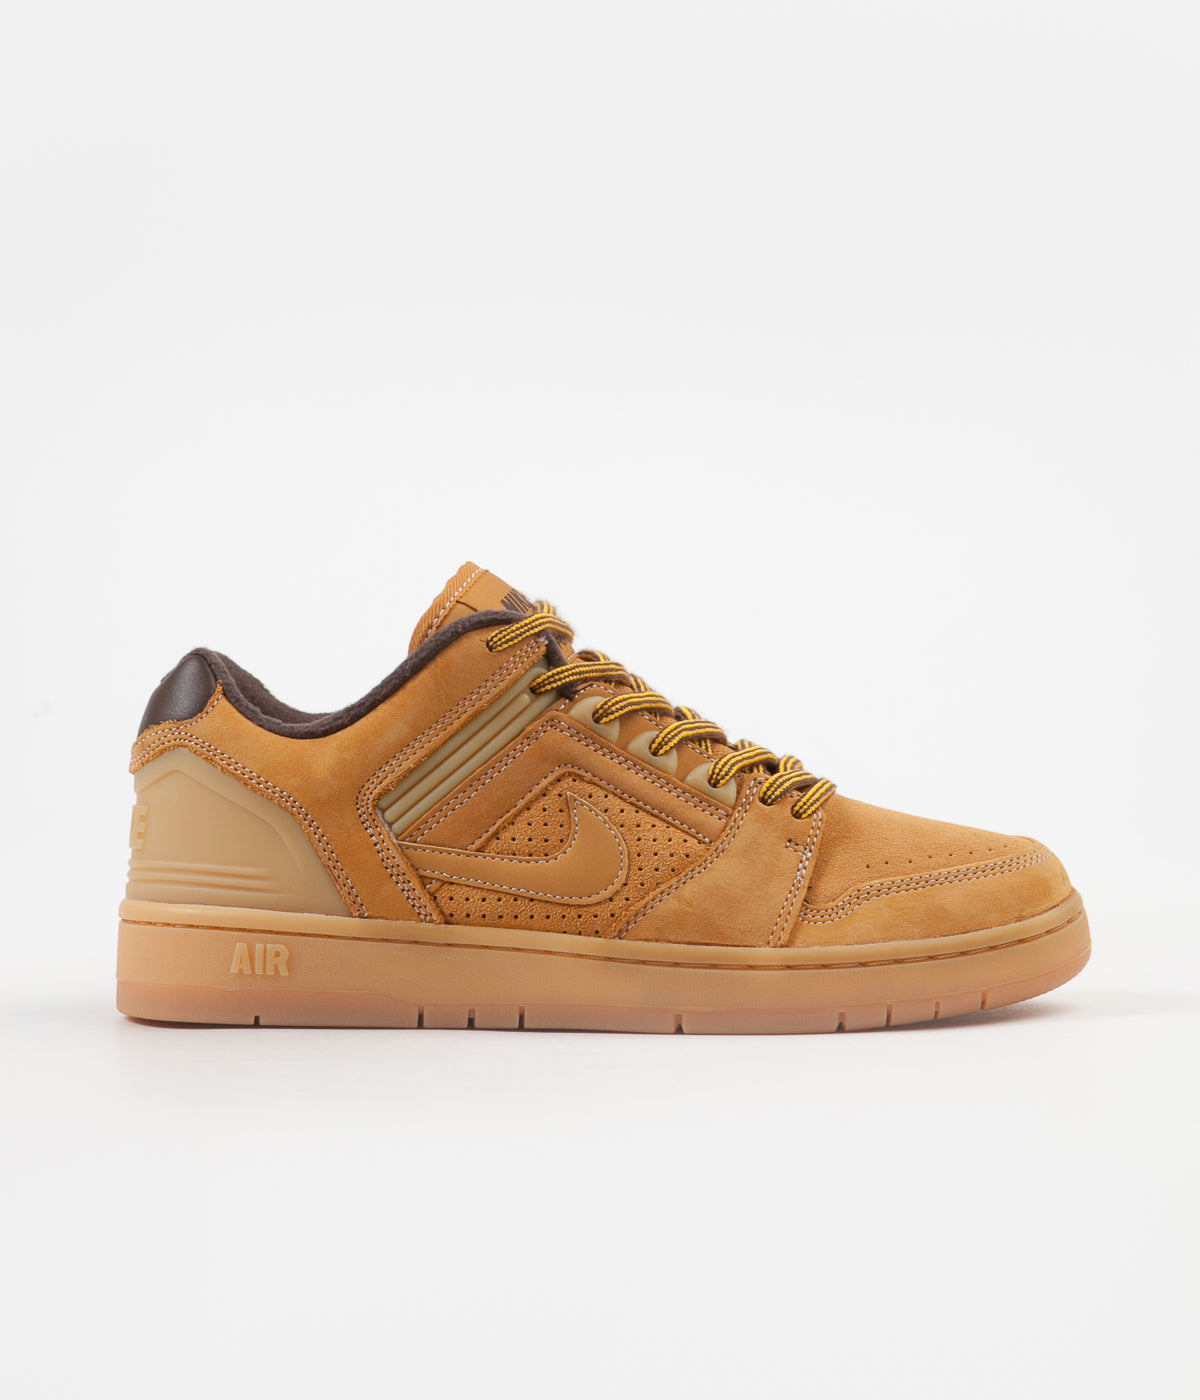 Nike SB Air Force II Low Premium Shoes - Bronze / Bronze - Baroque Brown